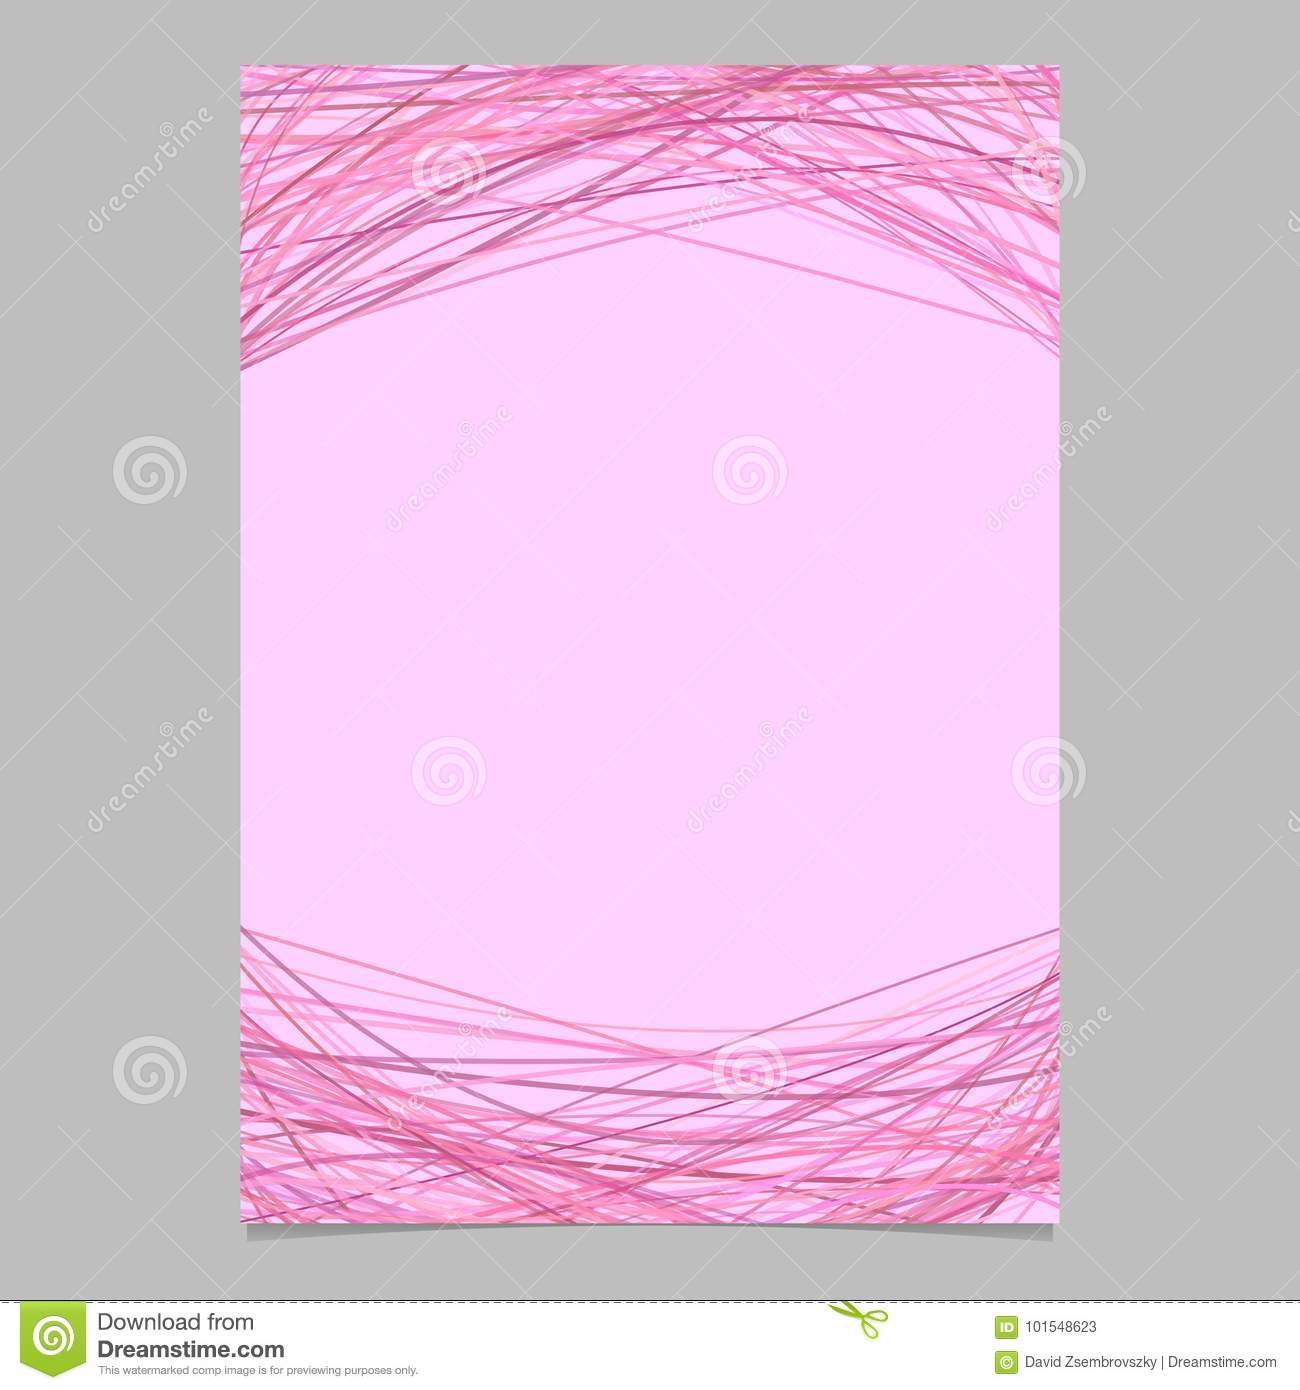 abstract brochure template with random arched lines blank flyer